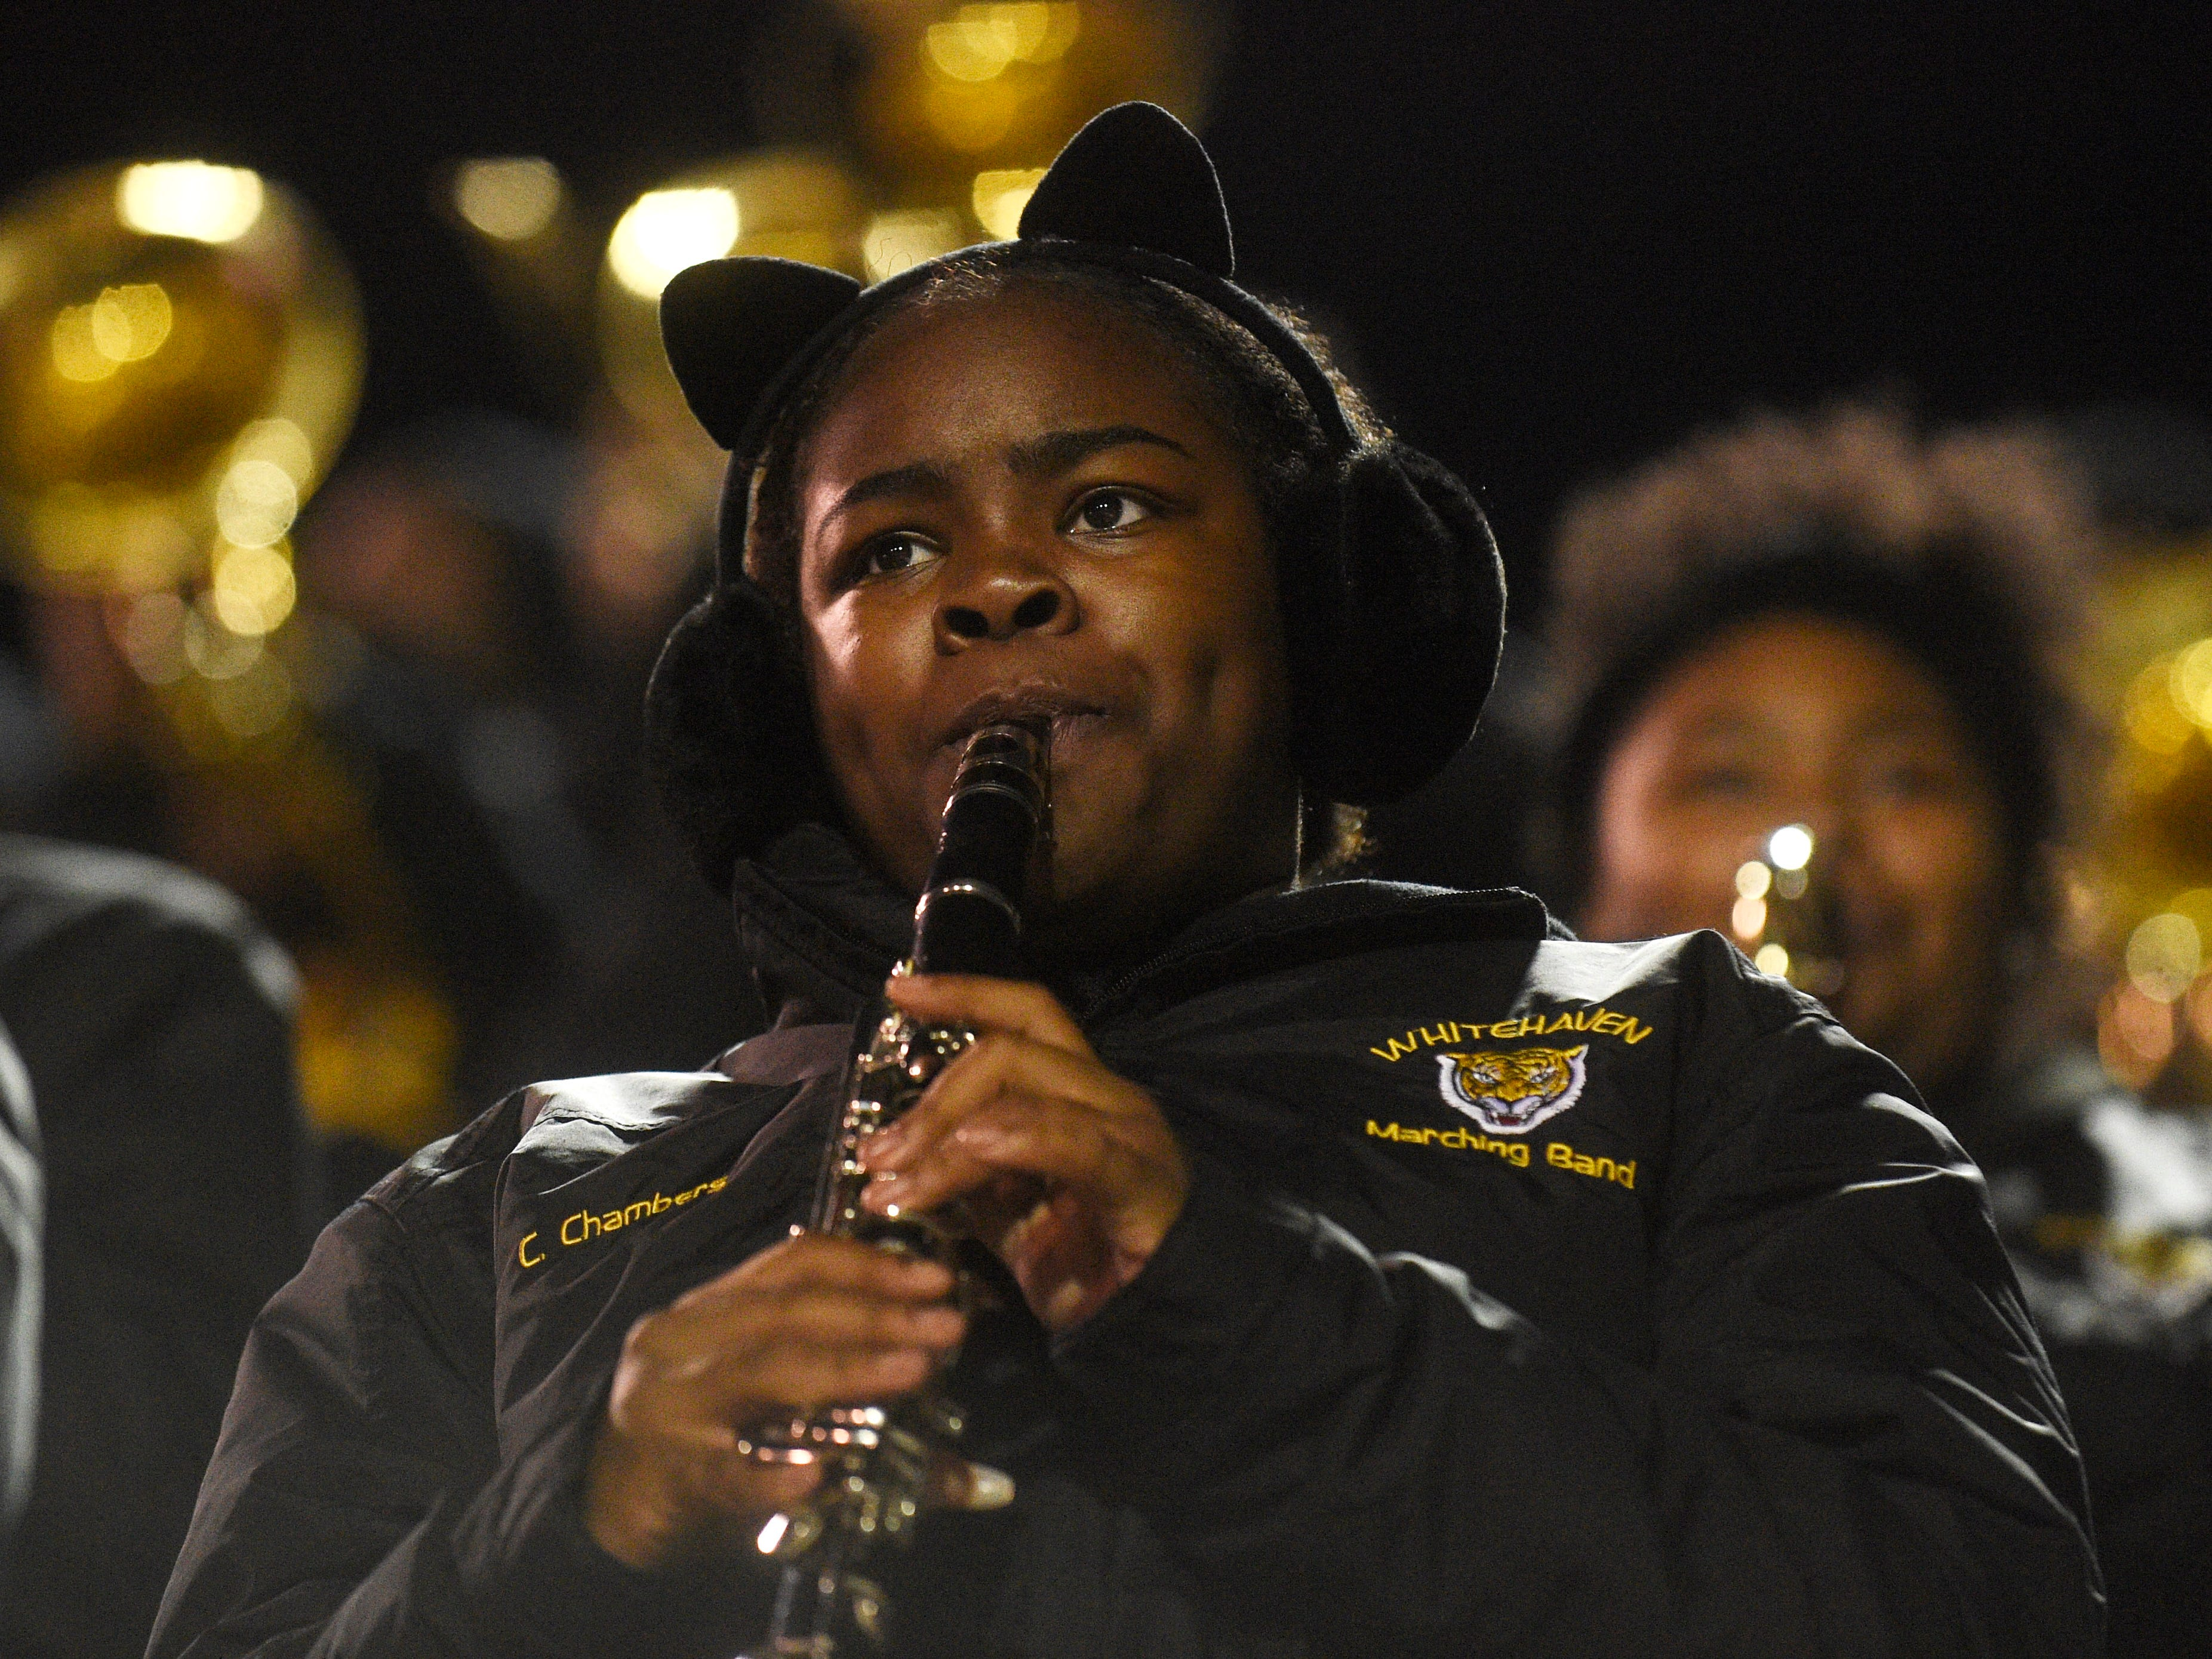 A Whitehaven band member plays during the Class 6A BlueCross Bowl state championship at Tennessee Tech's Tucker Stadium in Cookeville, Tenn., on Thursday, Nov. 29, 2018.